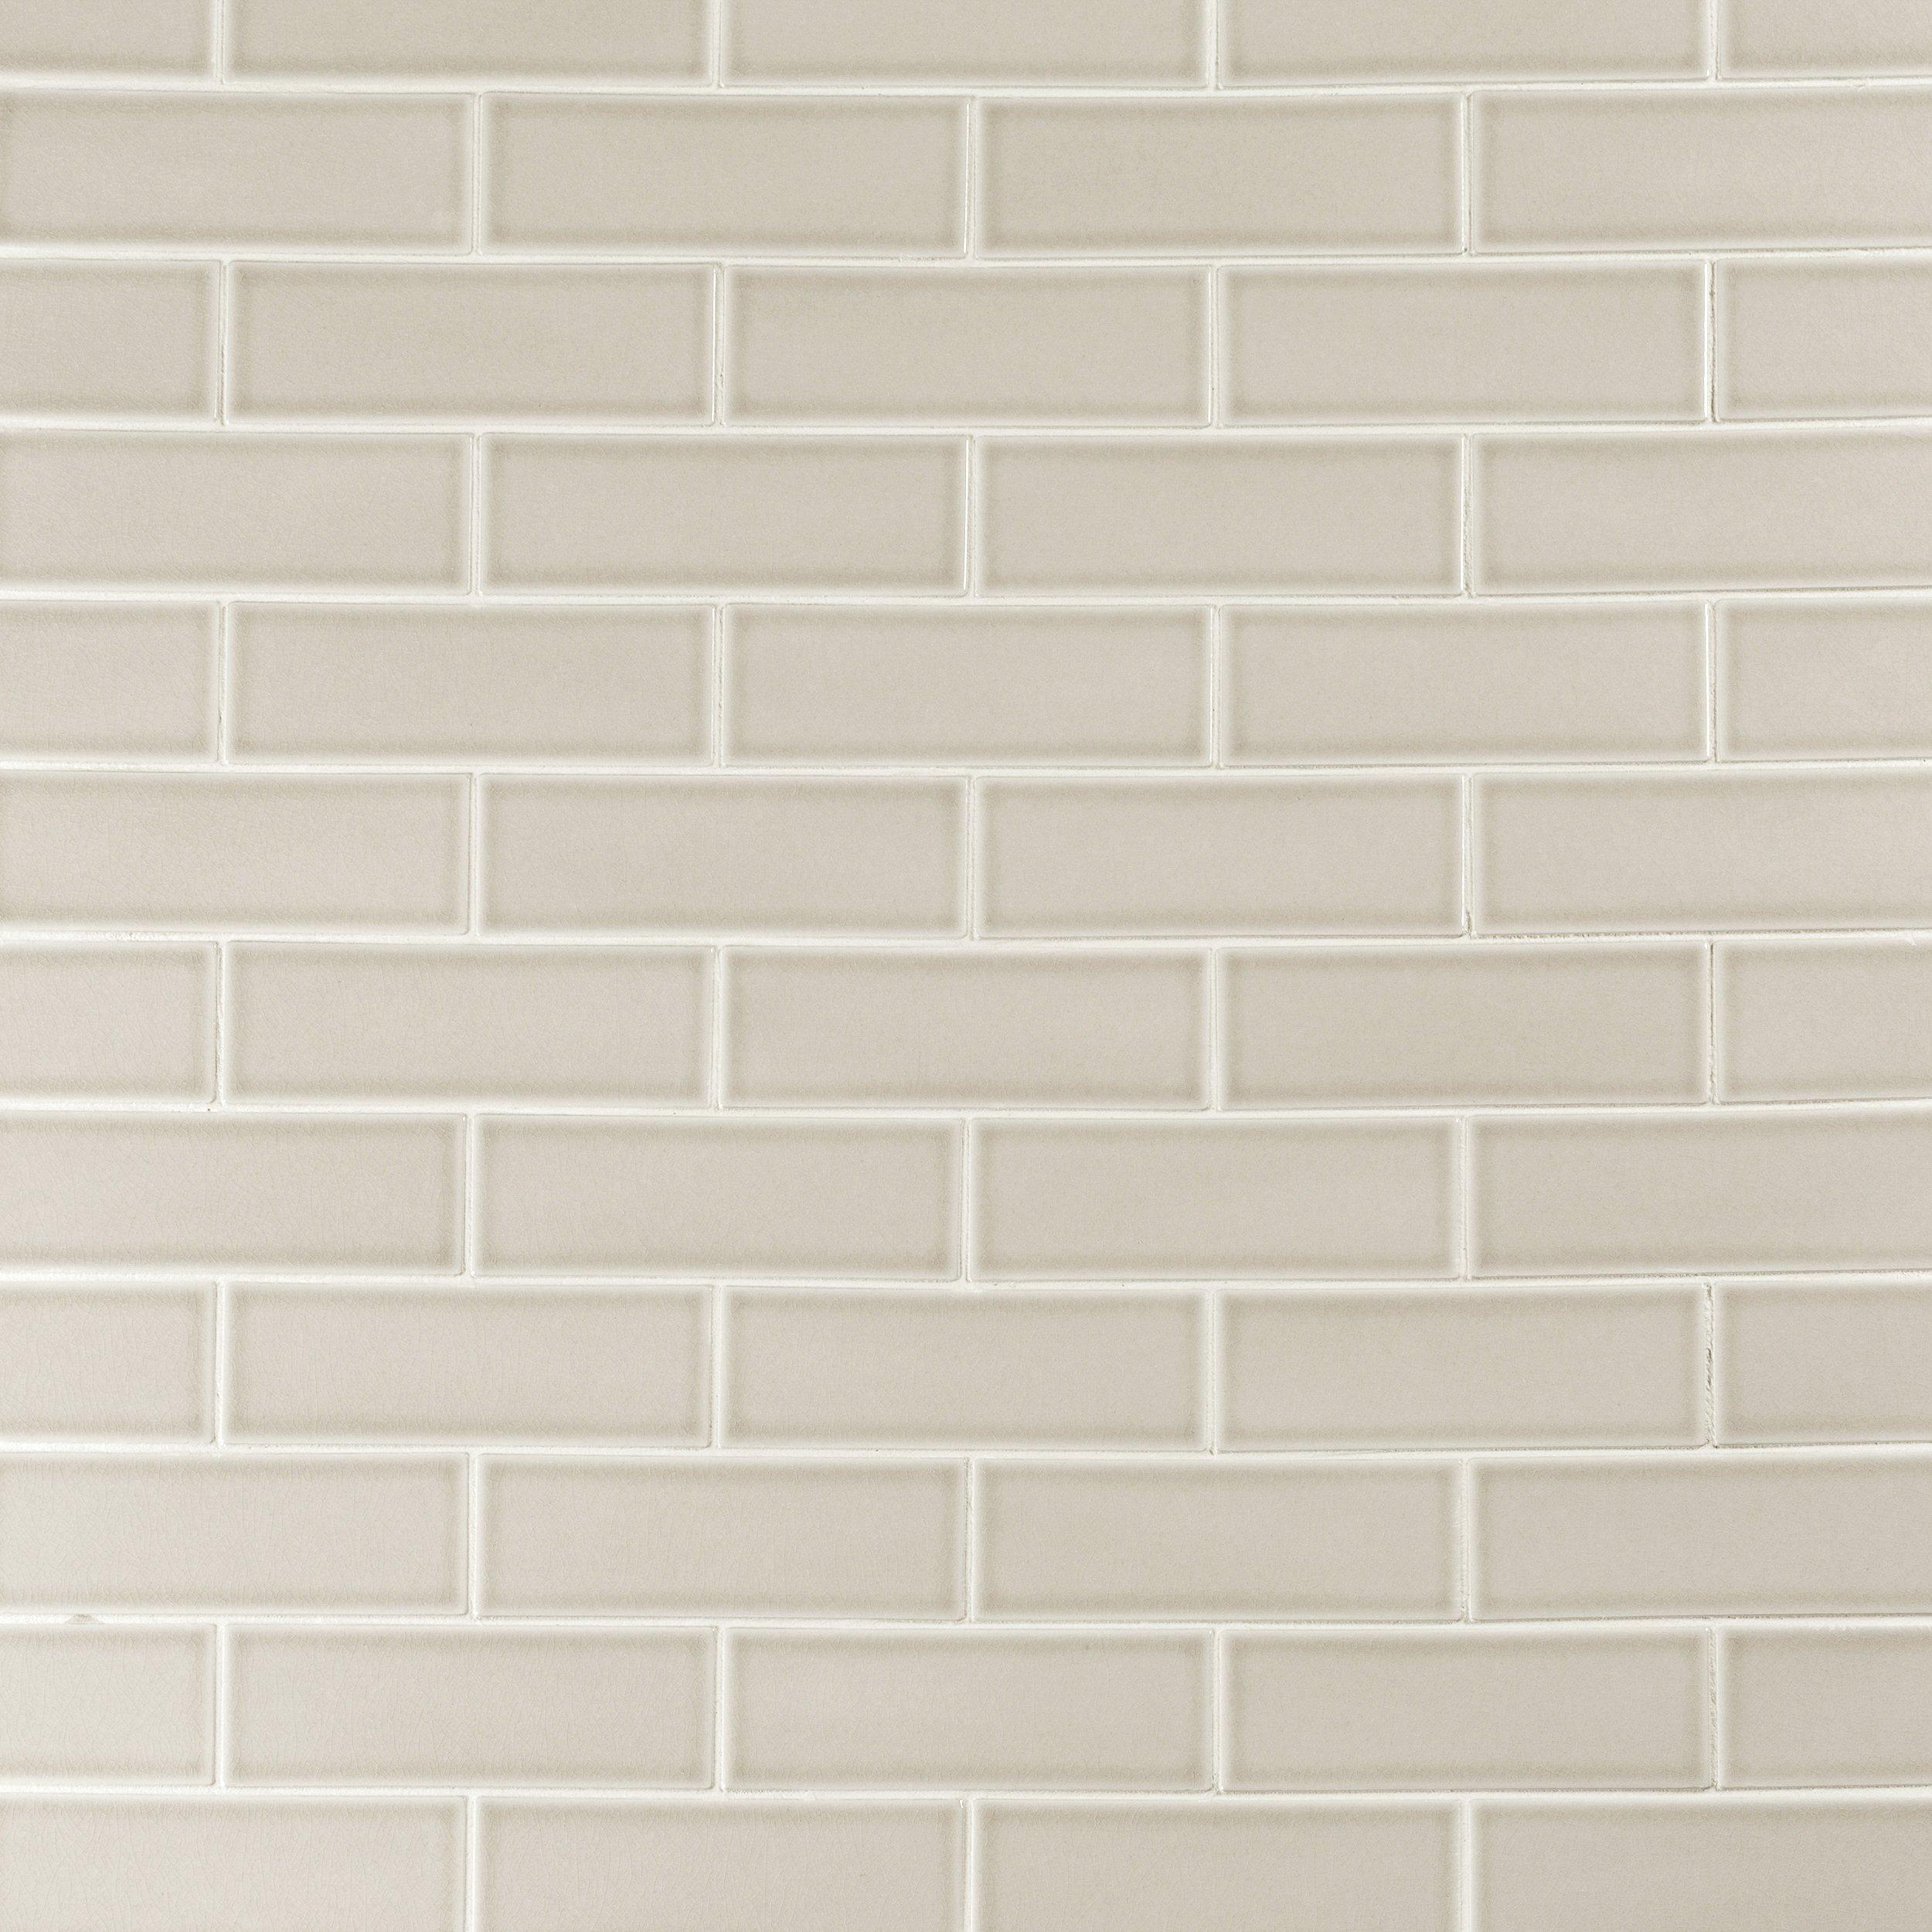 Kitchen Tile Herringbone Tile Bathroom Tile White 3x12 Thick Clay Body Subway Tile Countertop Backsplash Sample